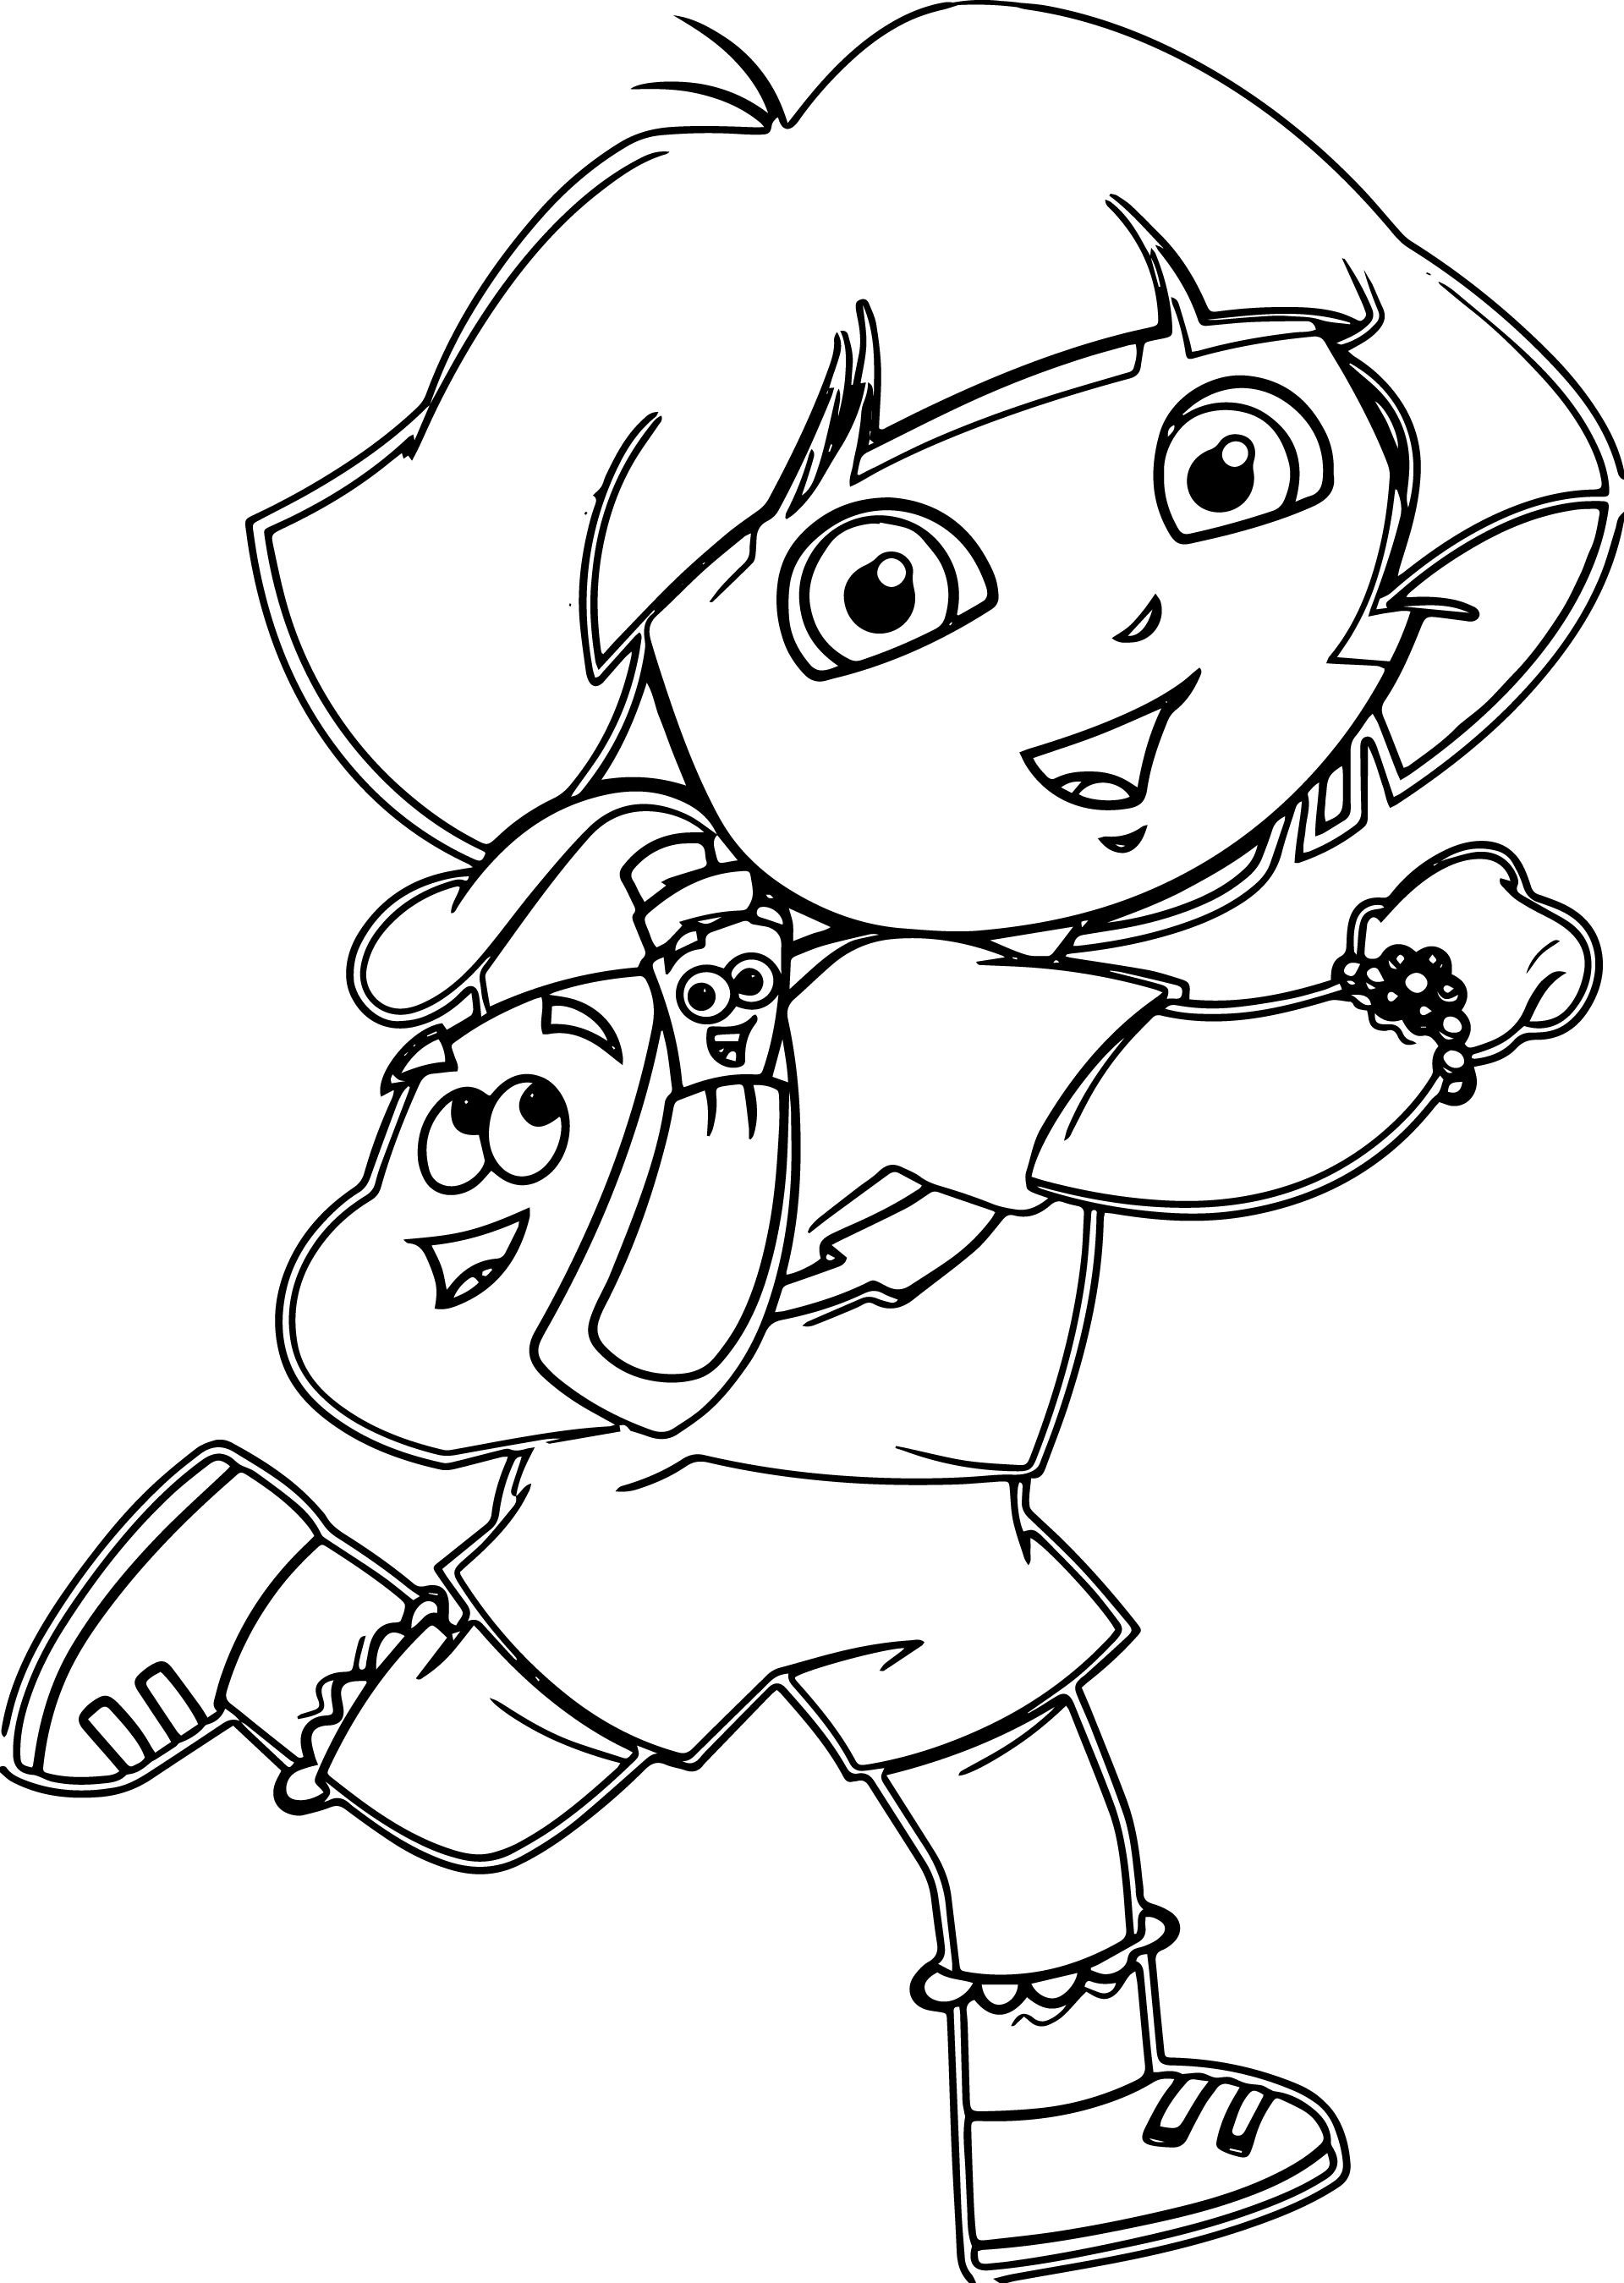 Dora Cartoon Coloring Pages